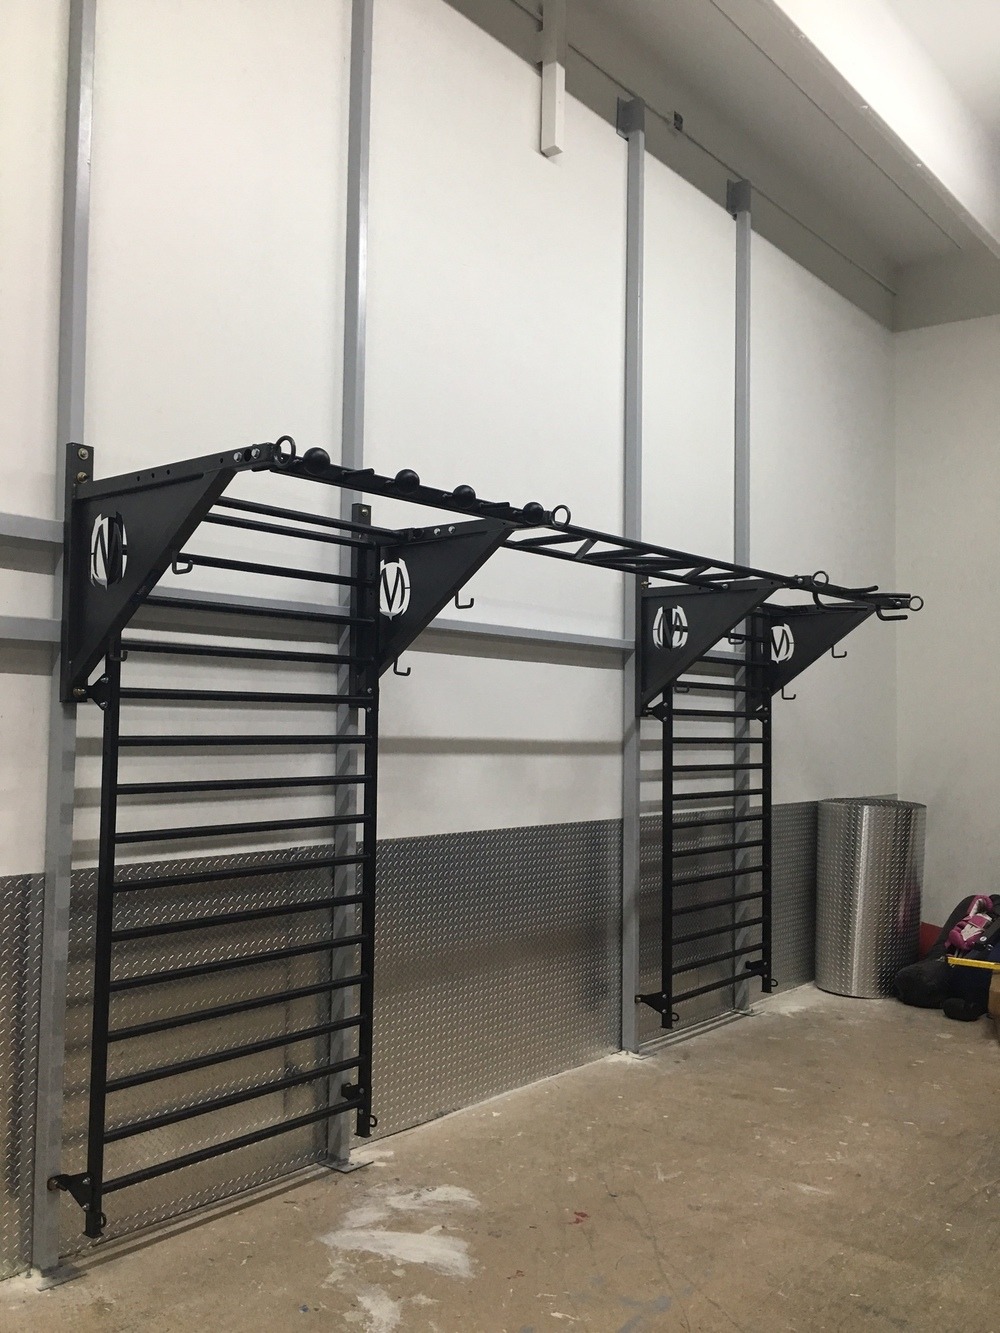 Boca Raton GYm_pull-up bracket system Stall bars-all Black.JPG